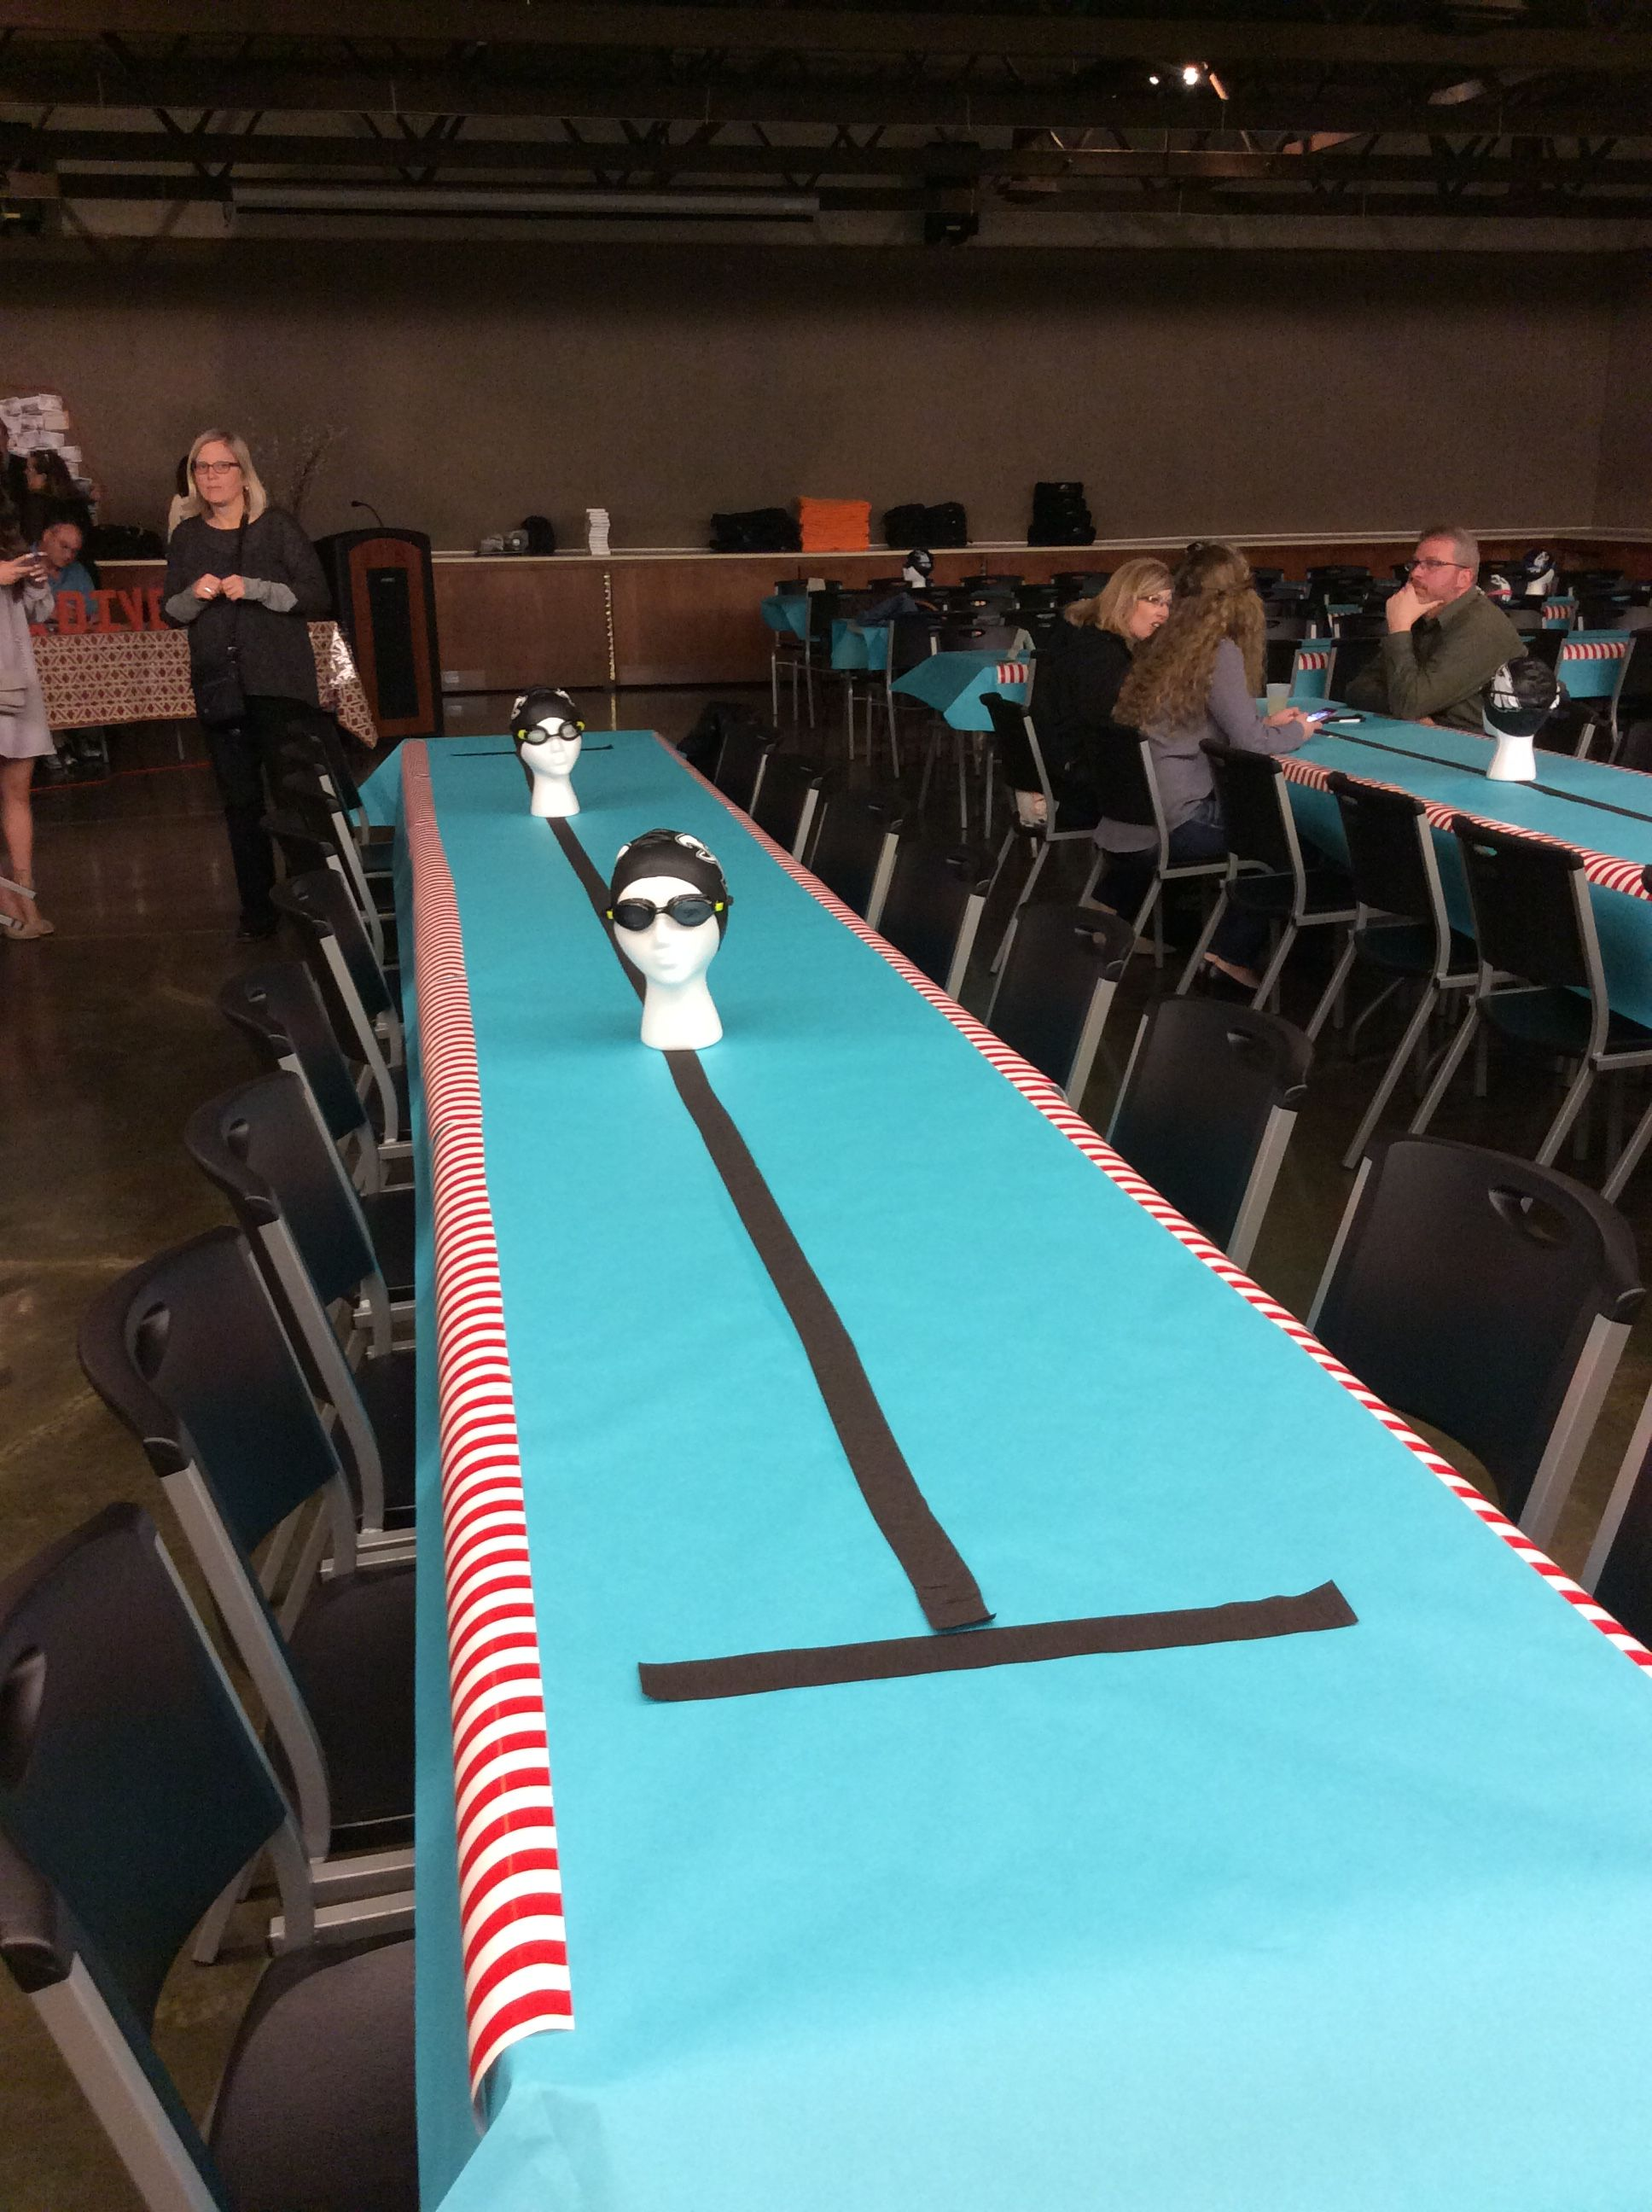 144eab3cd85 Swim banquet table decor | swim banquet | Swim team party, Swim team ...